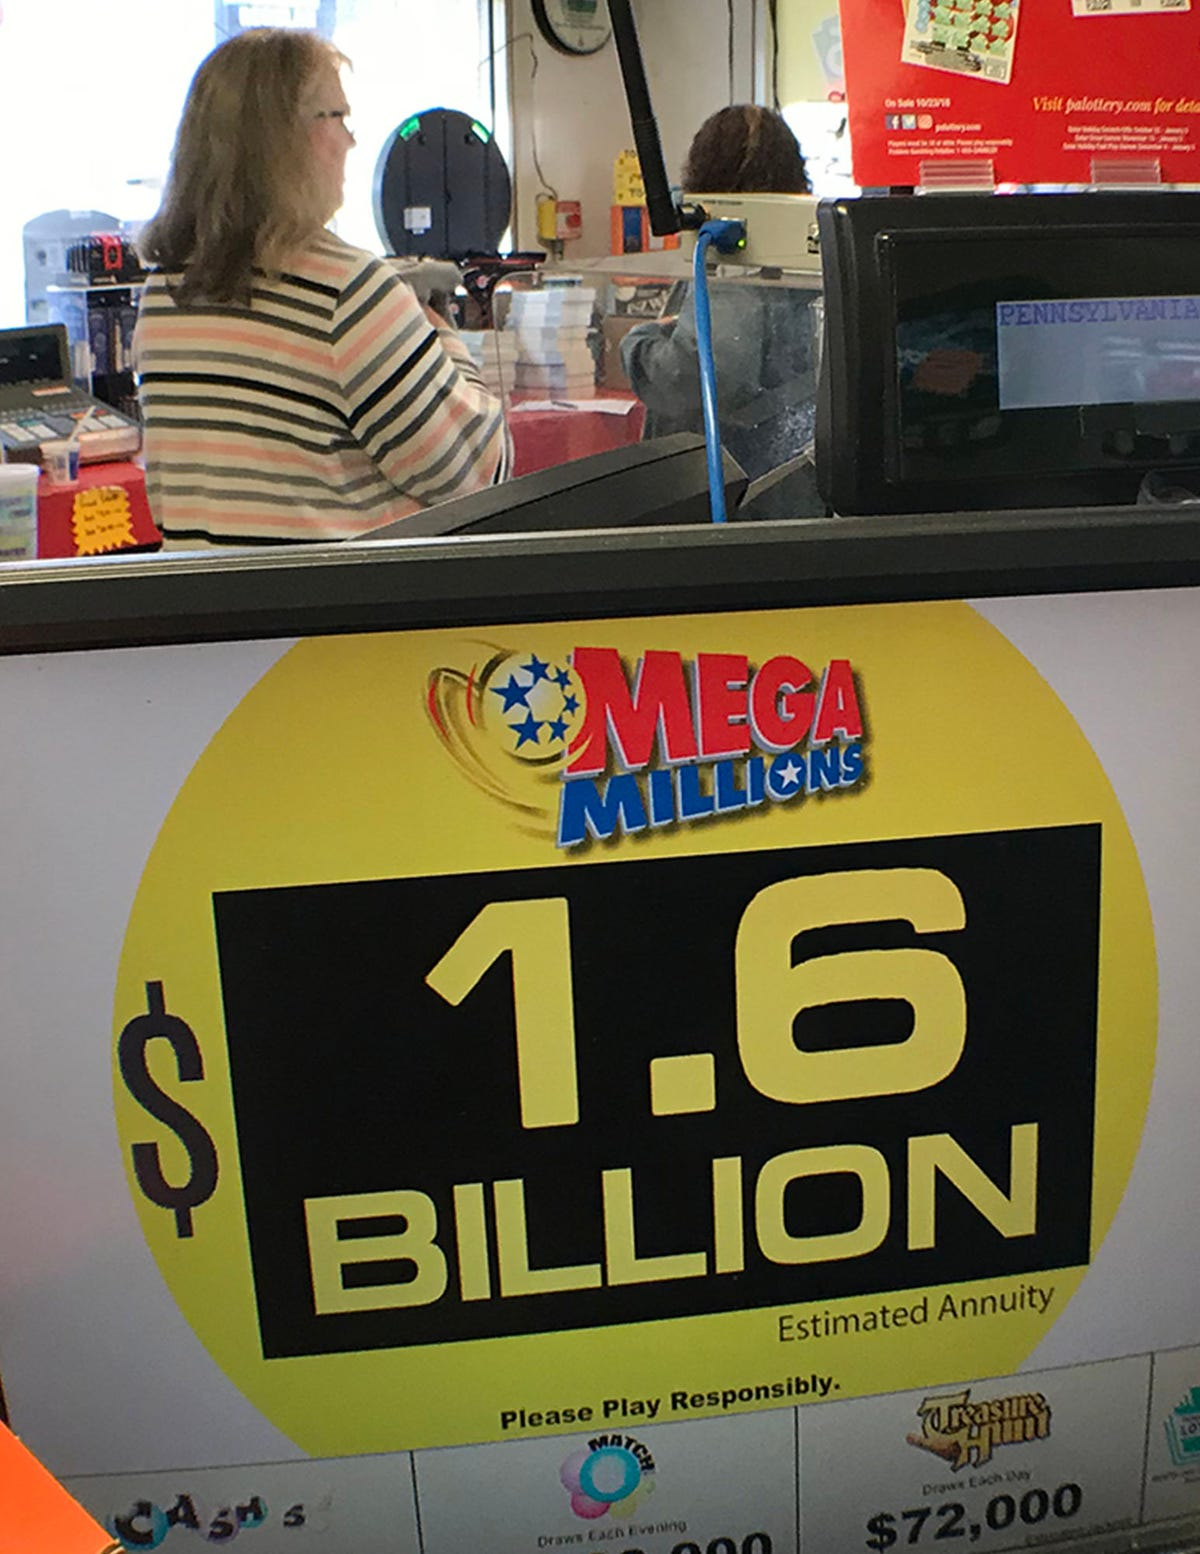 Powerball: Billionaire's accountant says don't blow it all